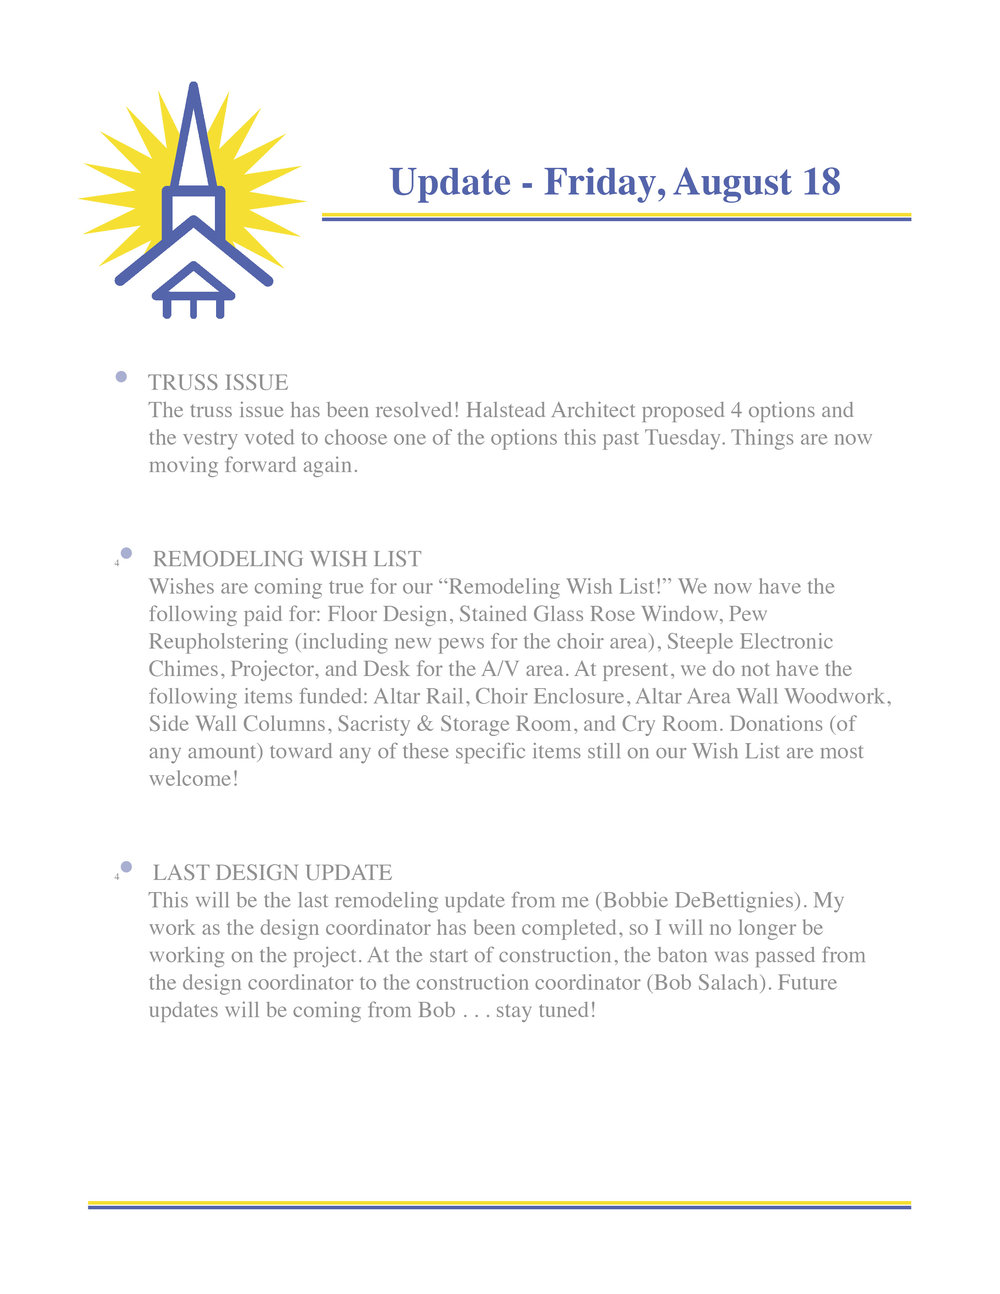 August 18 Remodeling Update - St. Michael's Episcopal Church Noblesville Indiana.jpg